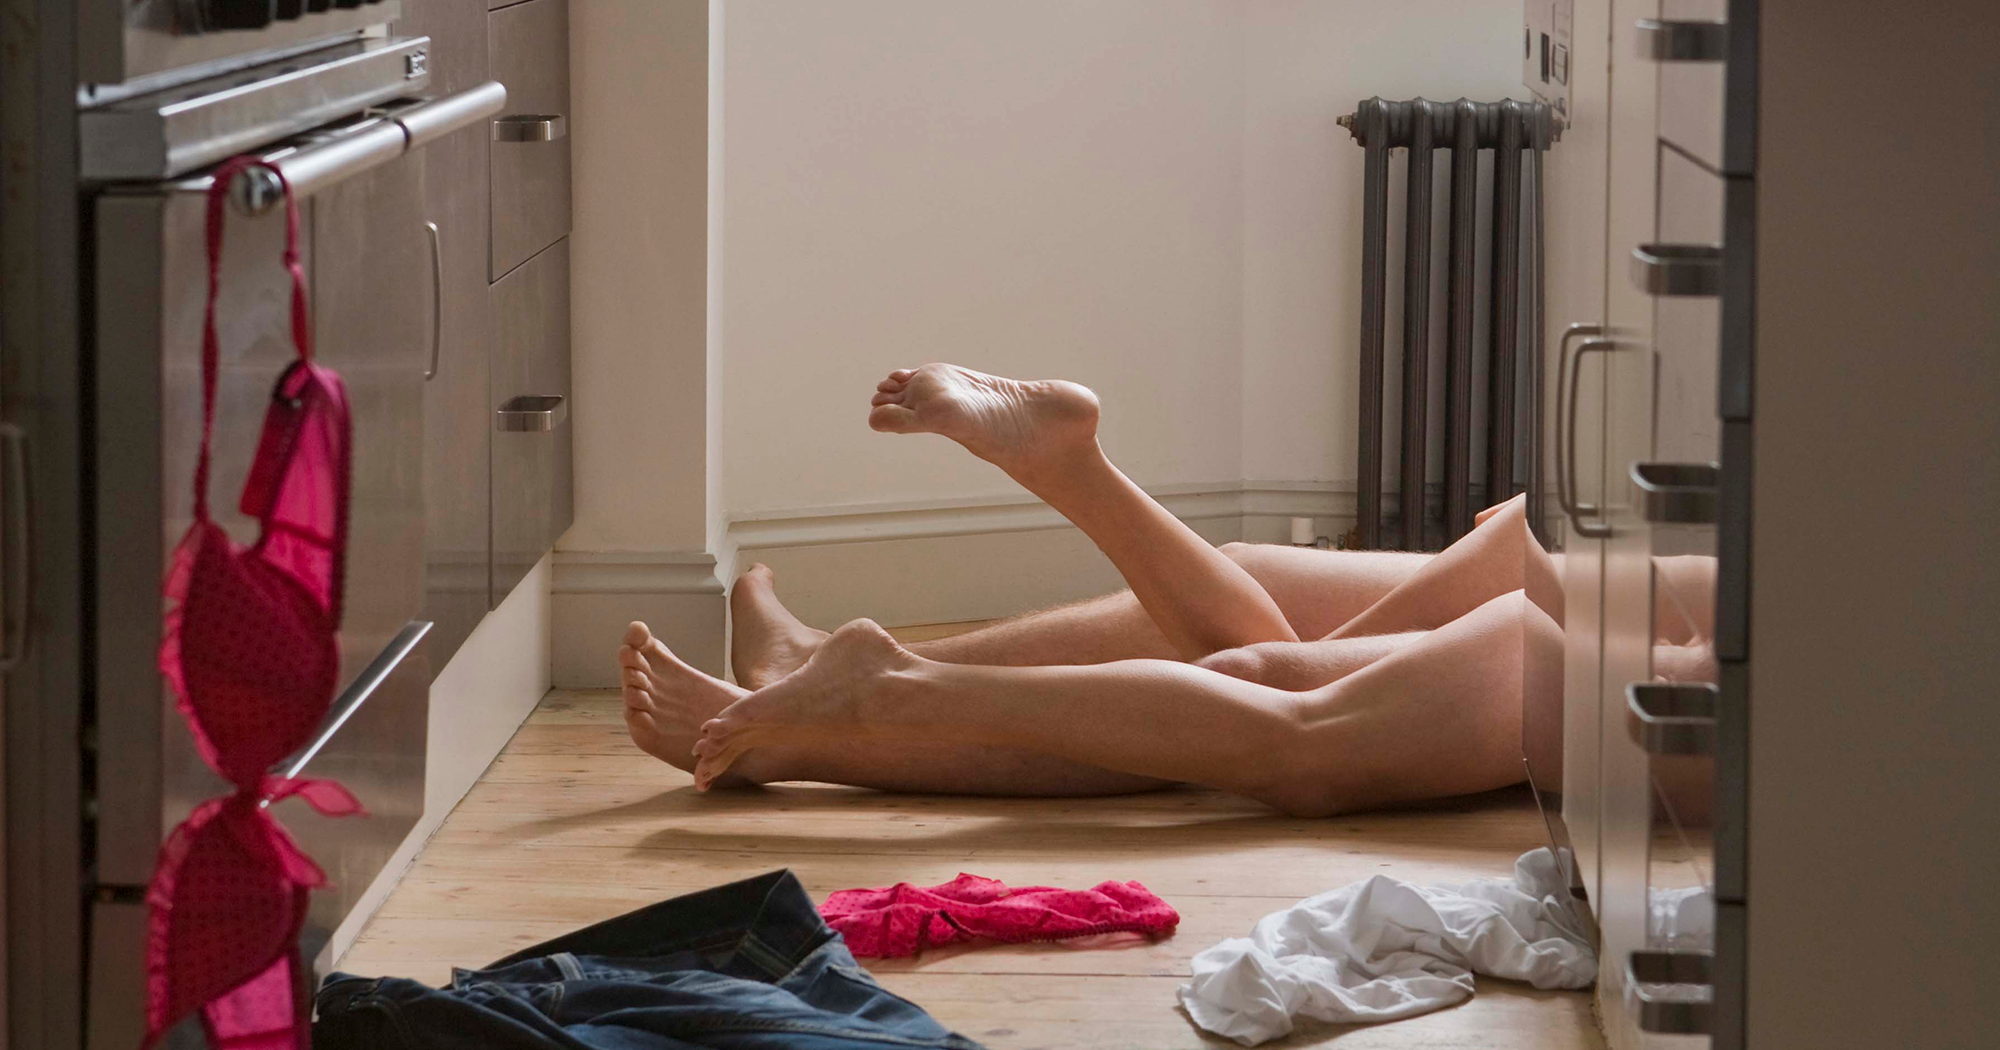 10 Kitchen Tools You Can Totally Use For Sex